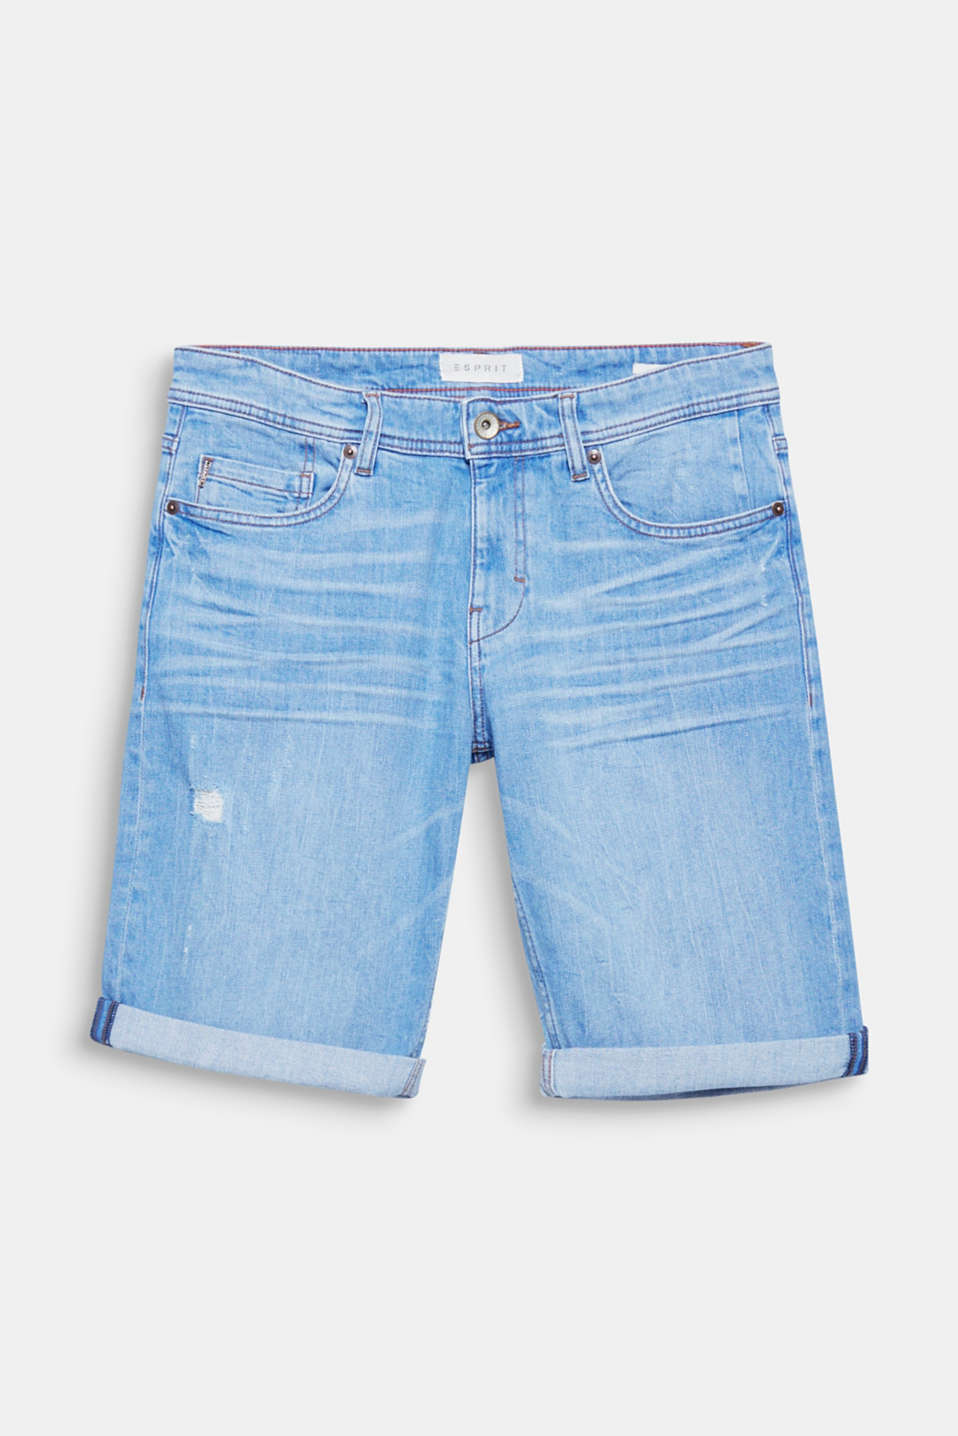 Bold vintage effects and the vibrant blue tone give these denim shorts their distinctive look.